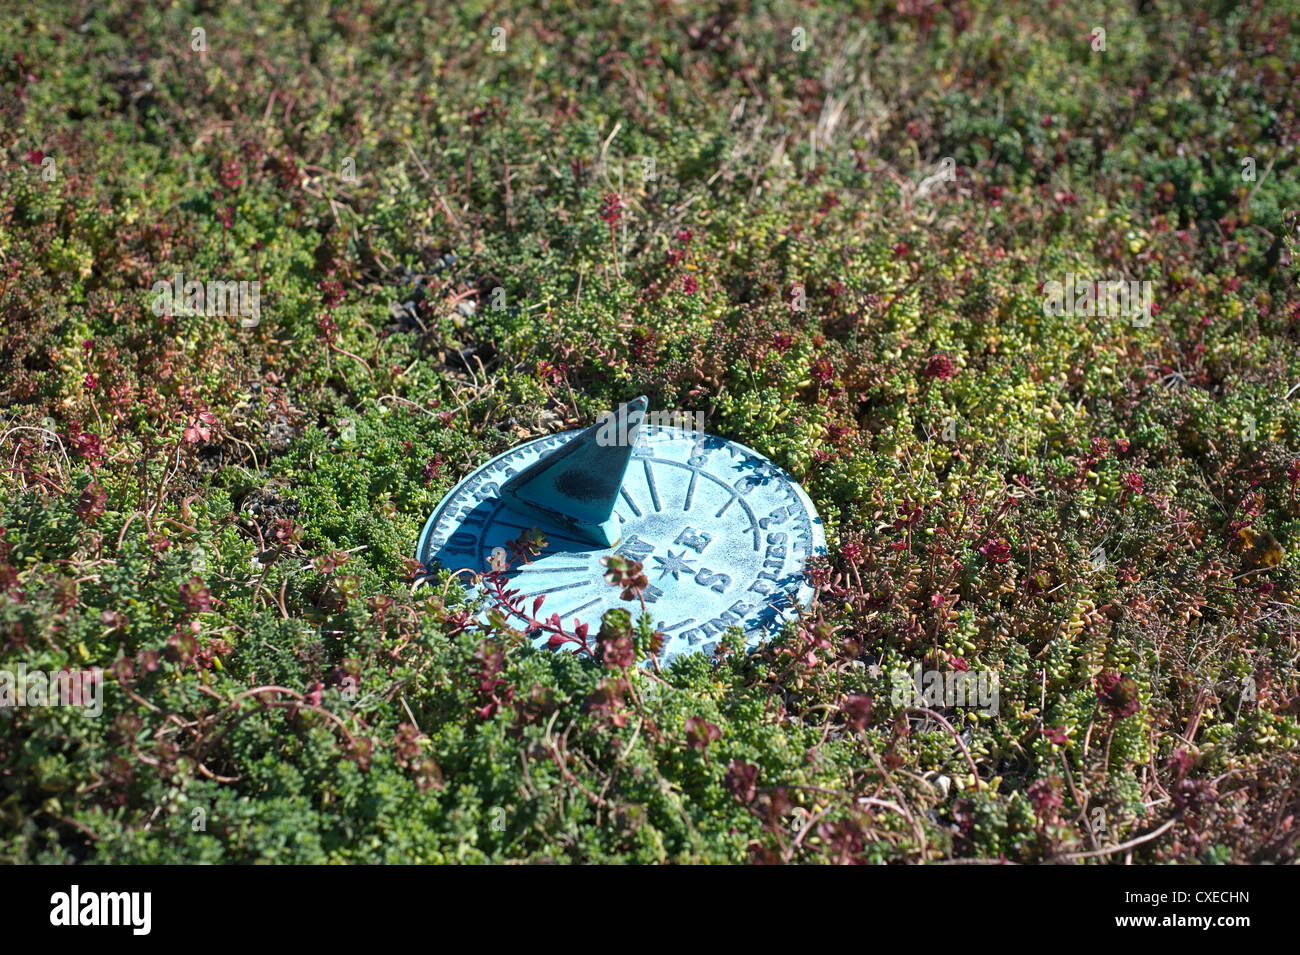 Sundial on a green roof in the Greenwich Village neighborhood in New York - Stock Image